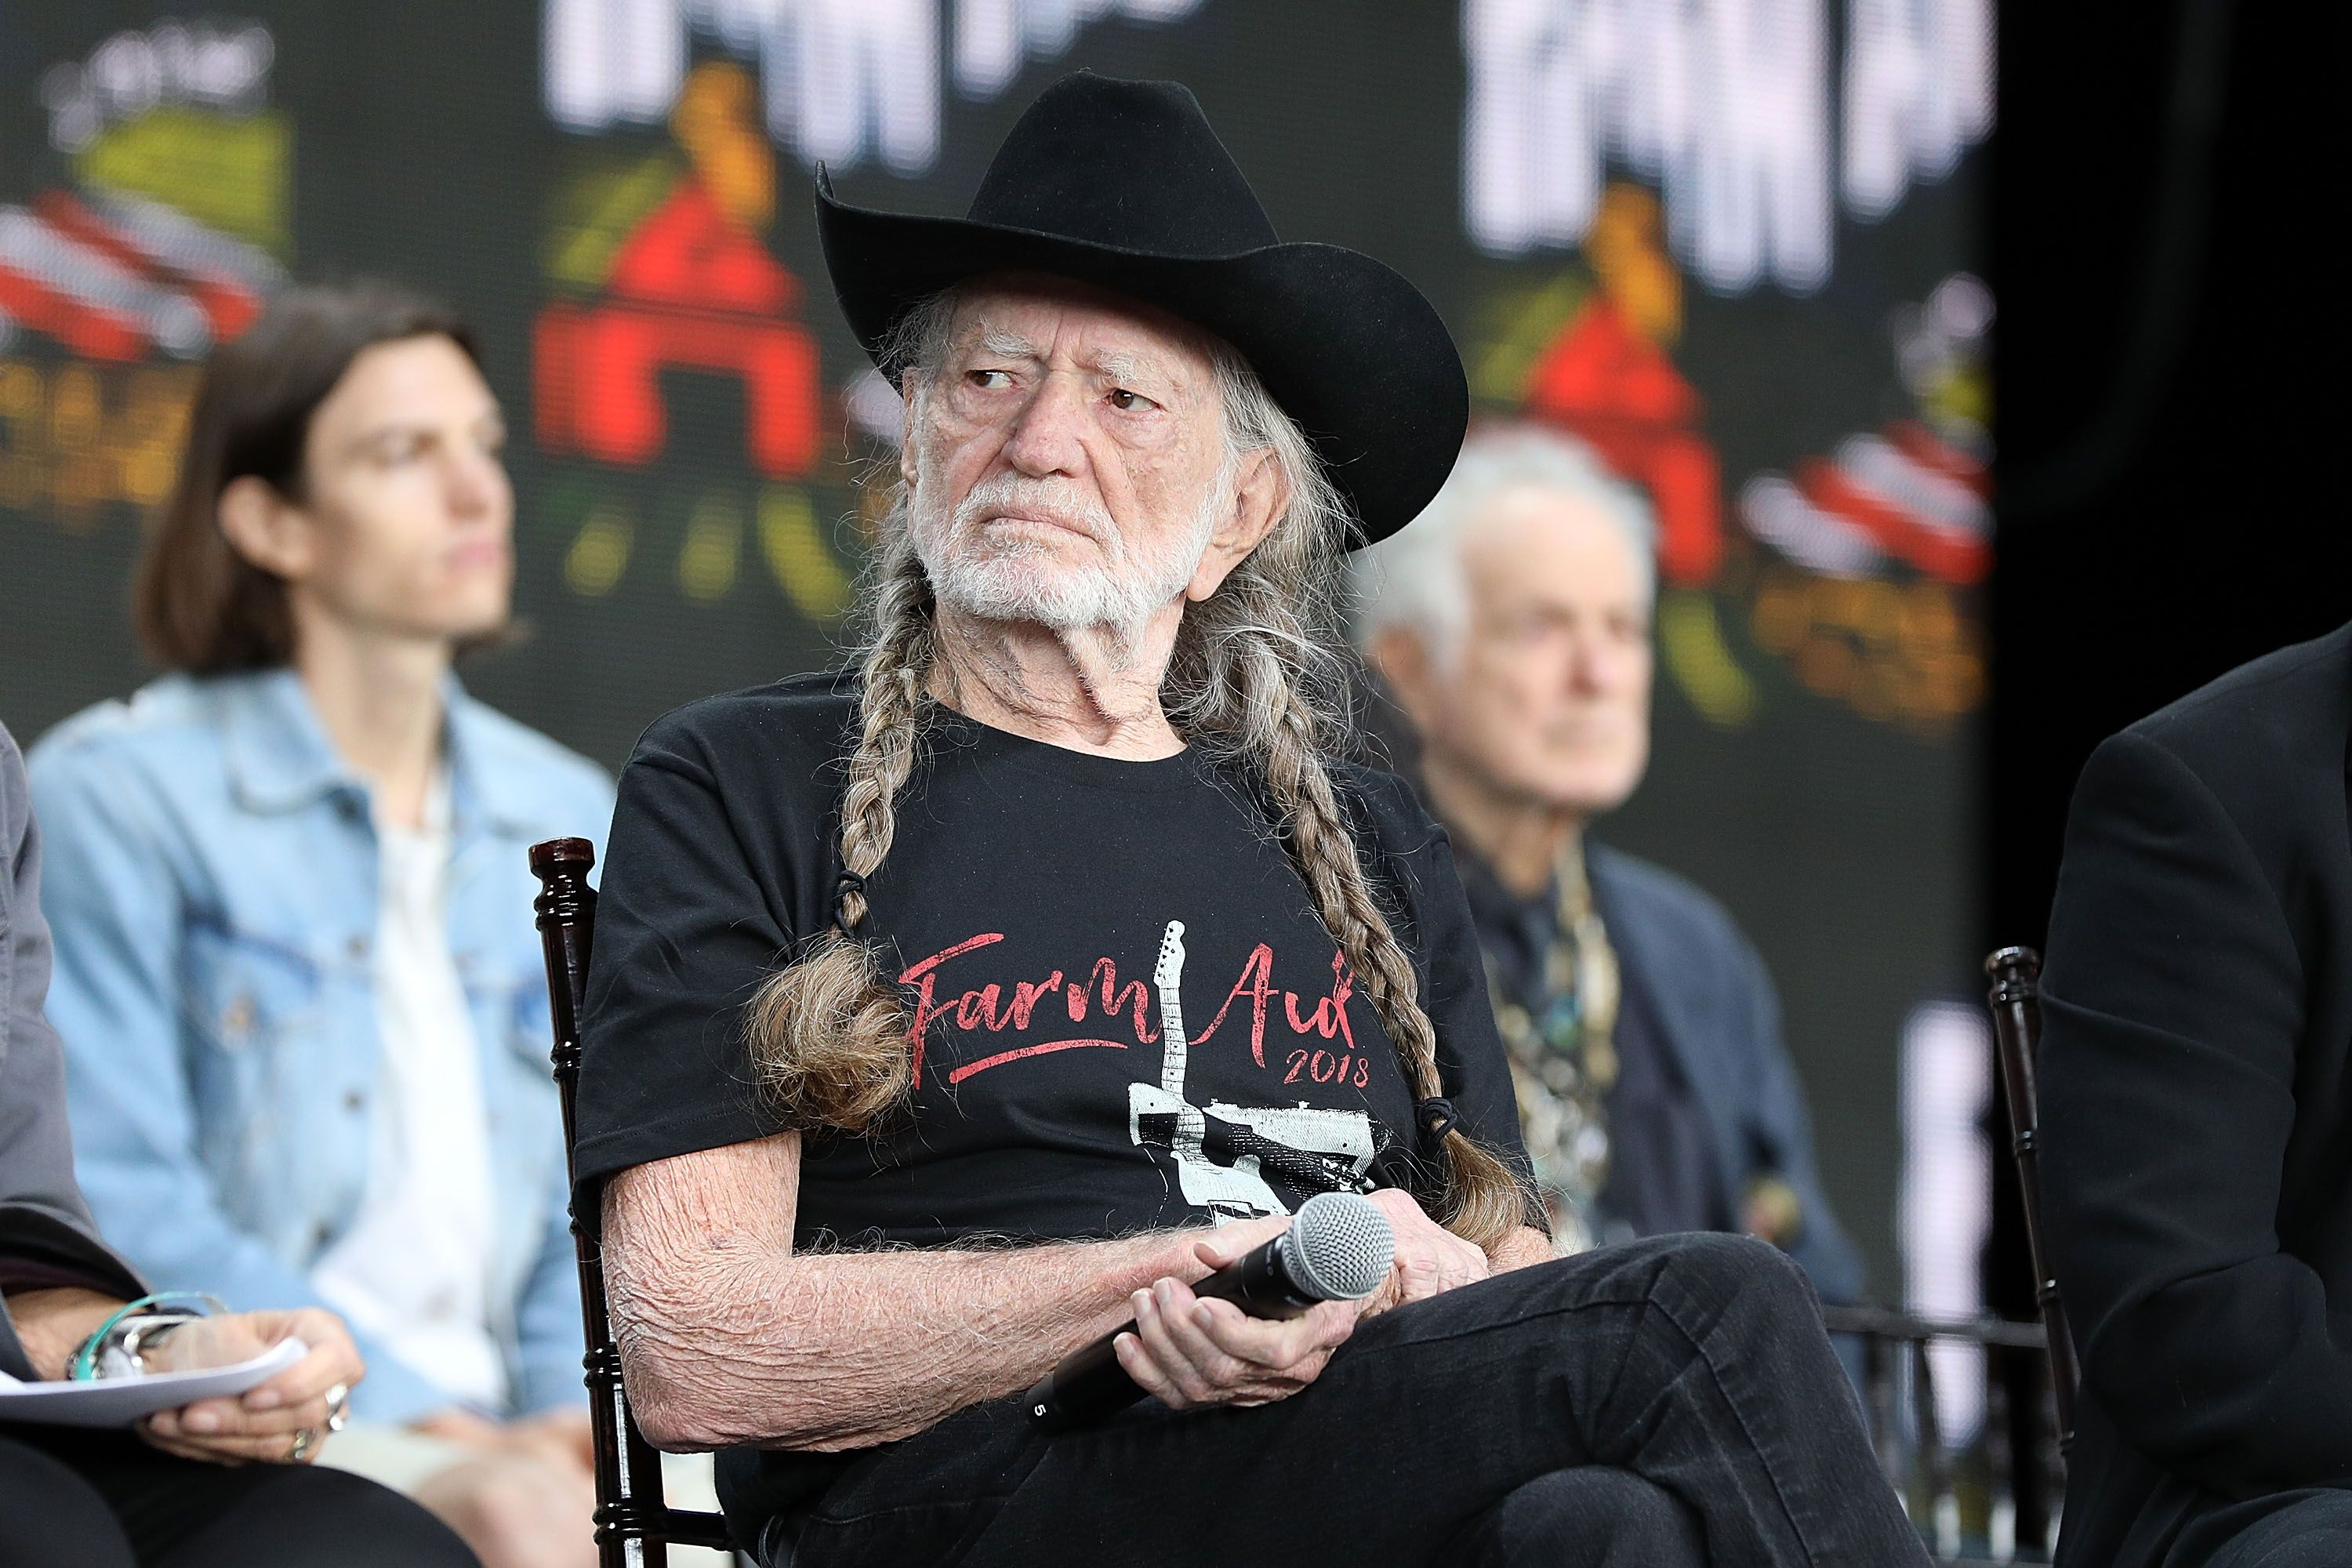 Willie Nelson at a press conference at Farm Aid 2018 at Xfinity Theatre in Hartford, Connecticut | Photo: Taylor Hill/Getty Images